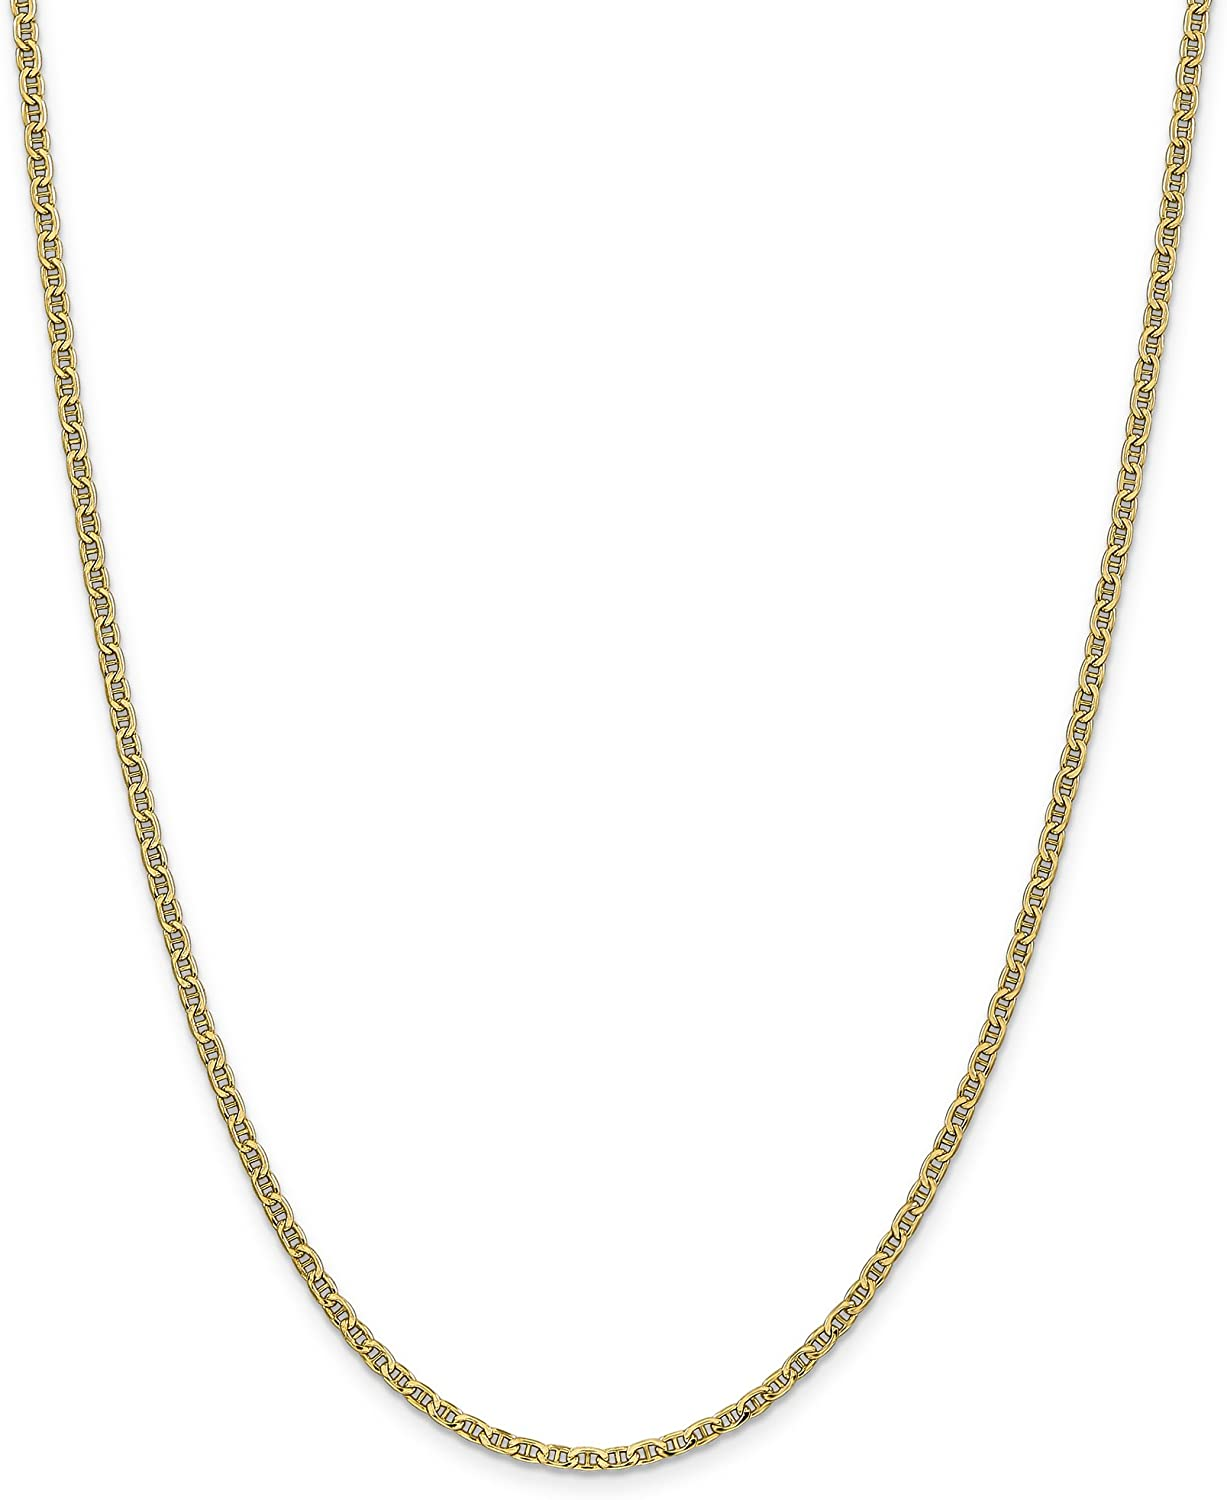 Brilliant Bijou 14k Yellow Gold Yellow Gold Anchor Chain Necklace